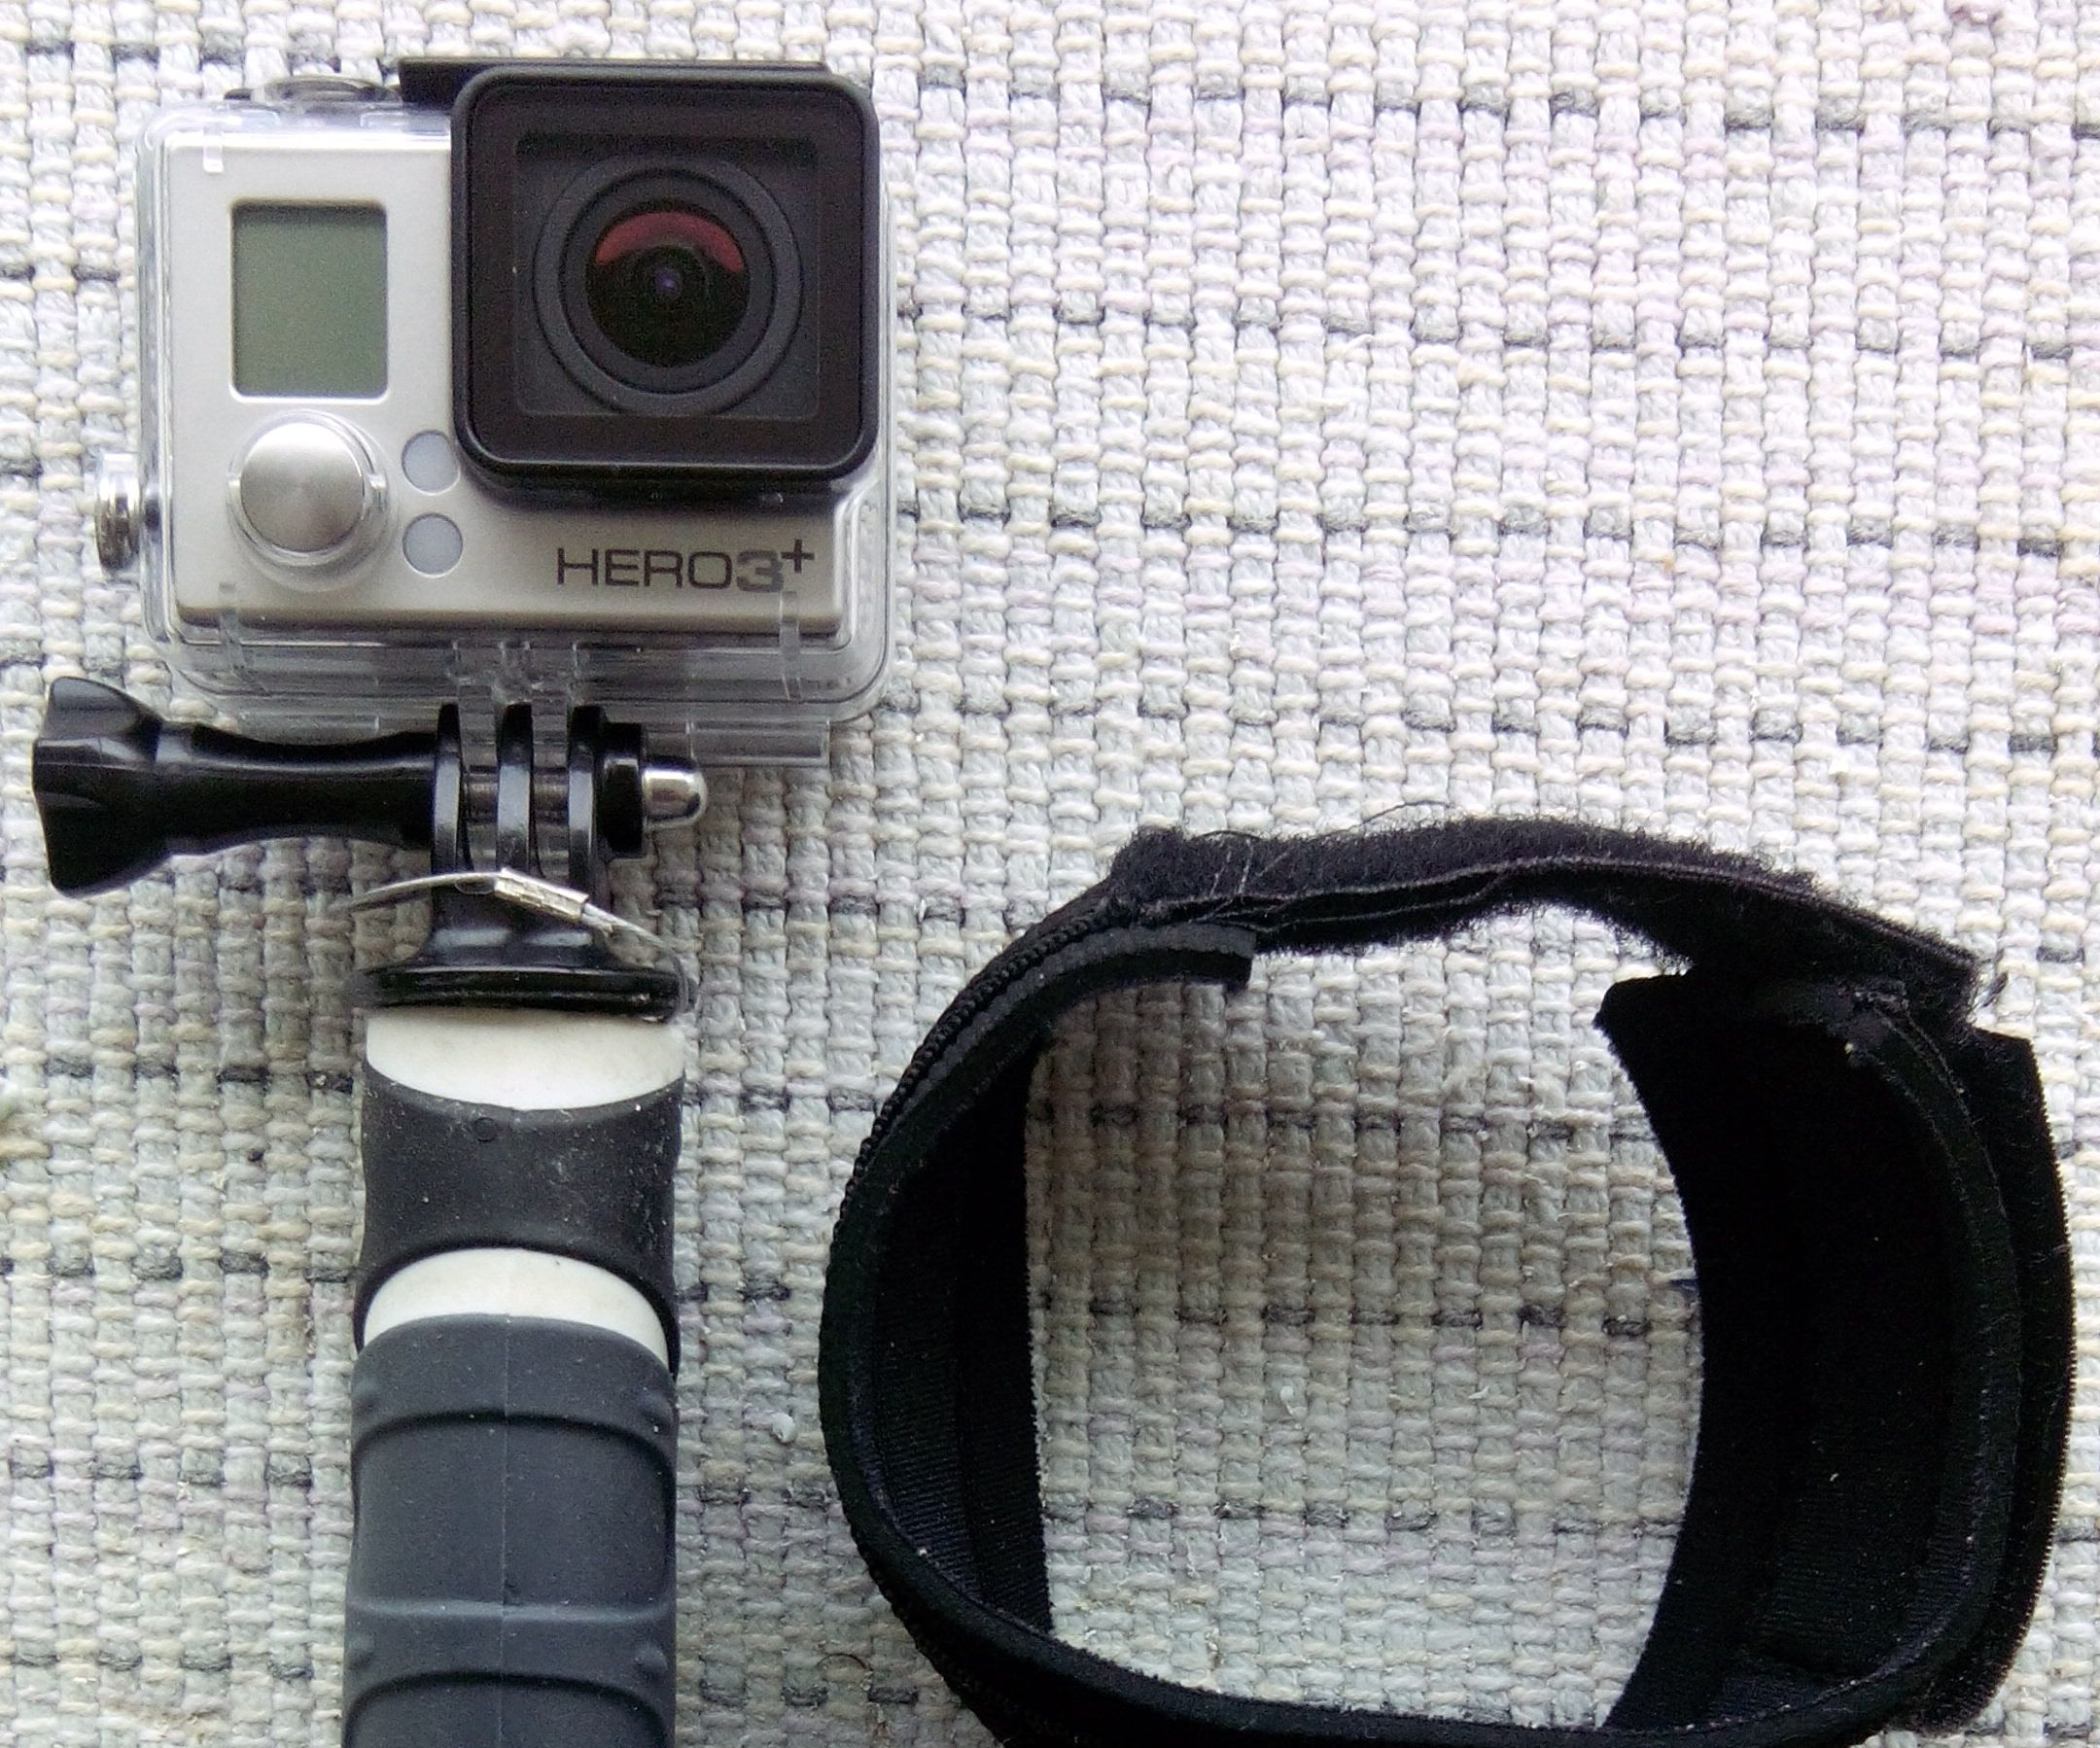 Easy and pro looking GoPro handle